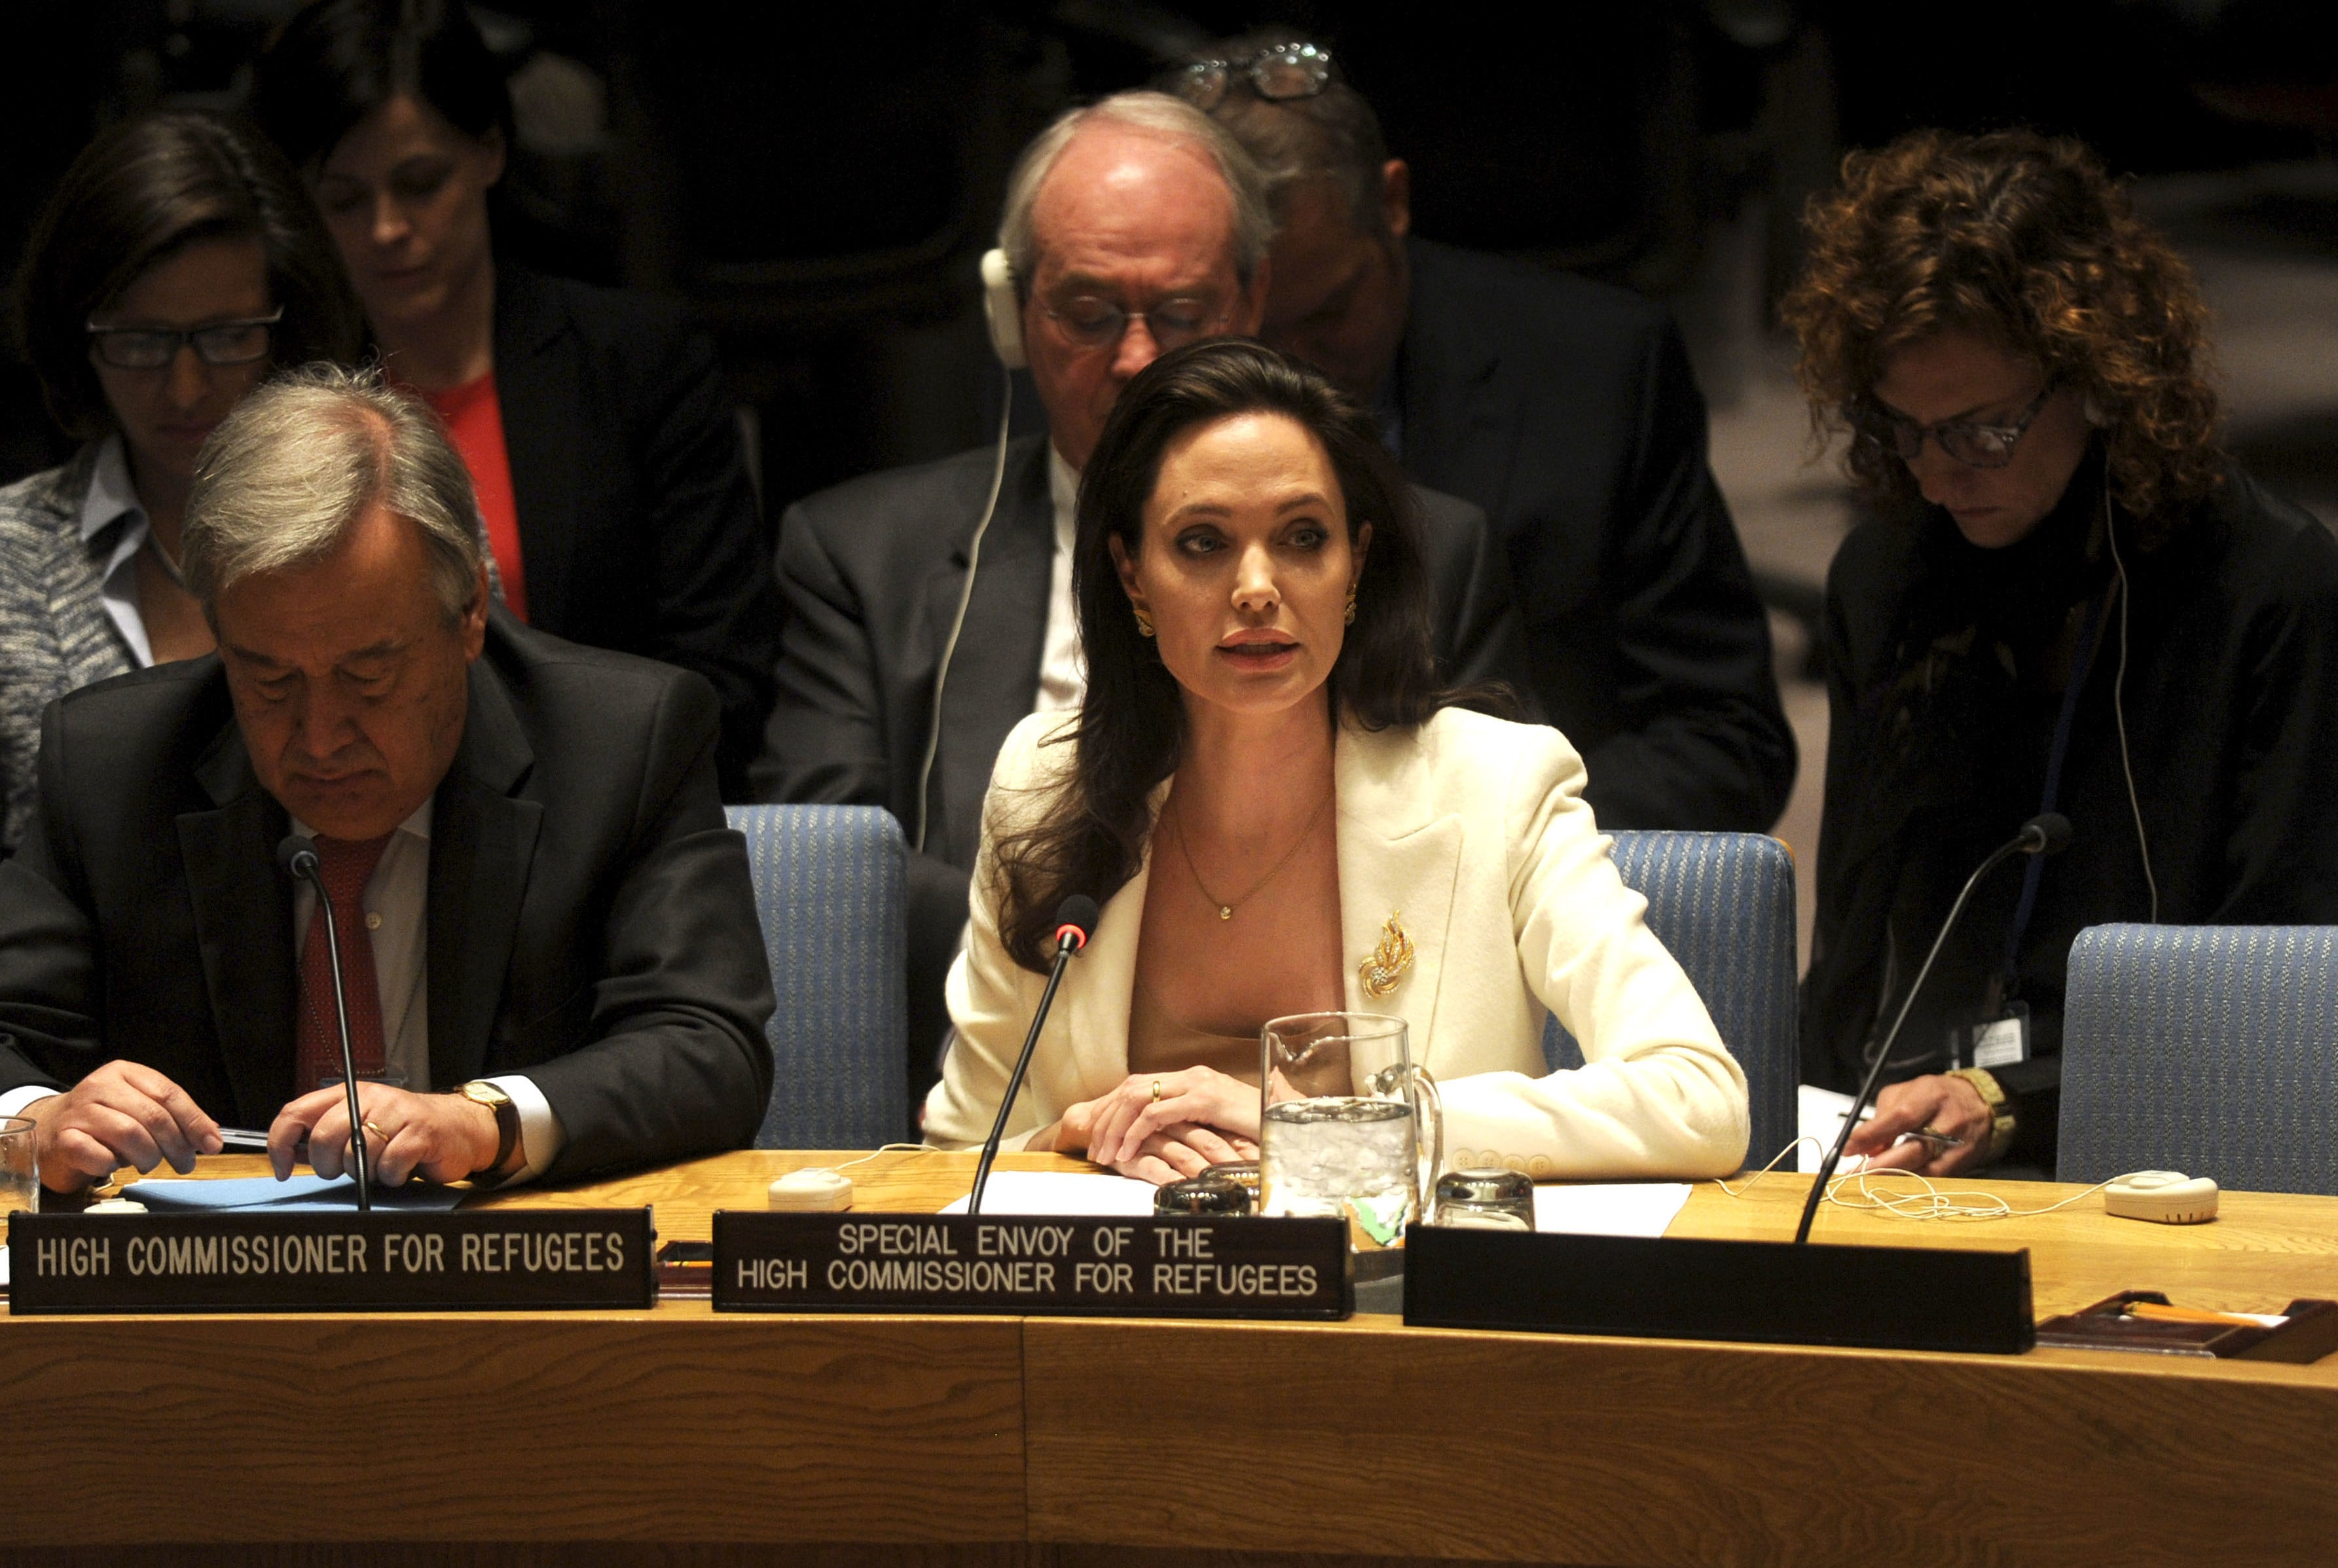 Angelina Jolie has collaborated with the UN in several occasions. More recently, the actress attended a Security Council Meeting on Syria's refugee crisis. (Photo: WENN)